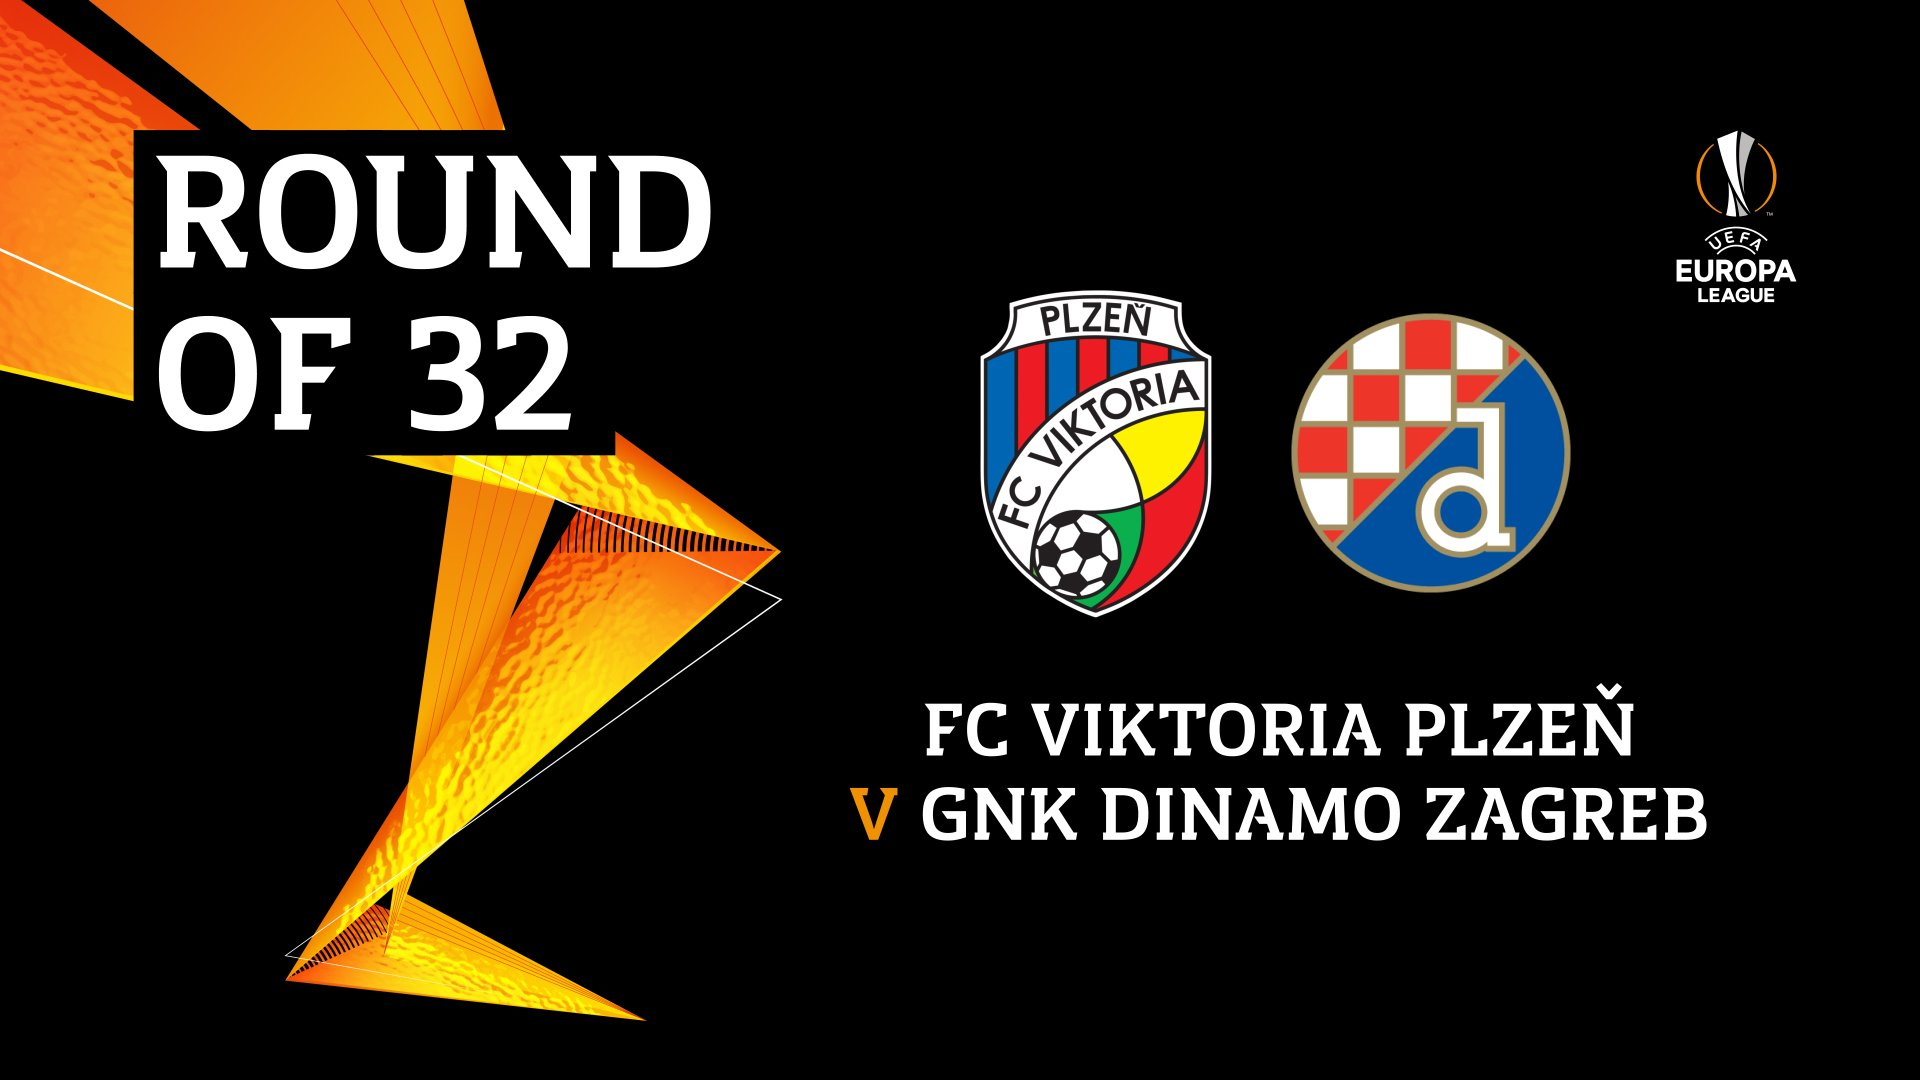 Dinamo Zagreb Is Our Opponent For Round Of 32 Of The Uefa